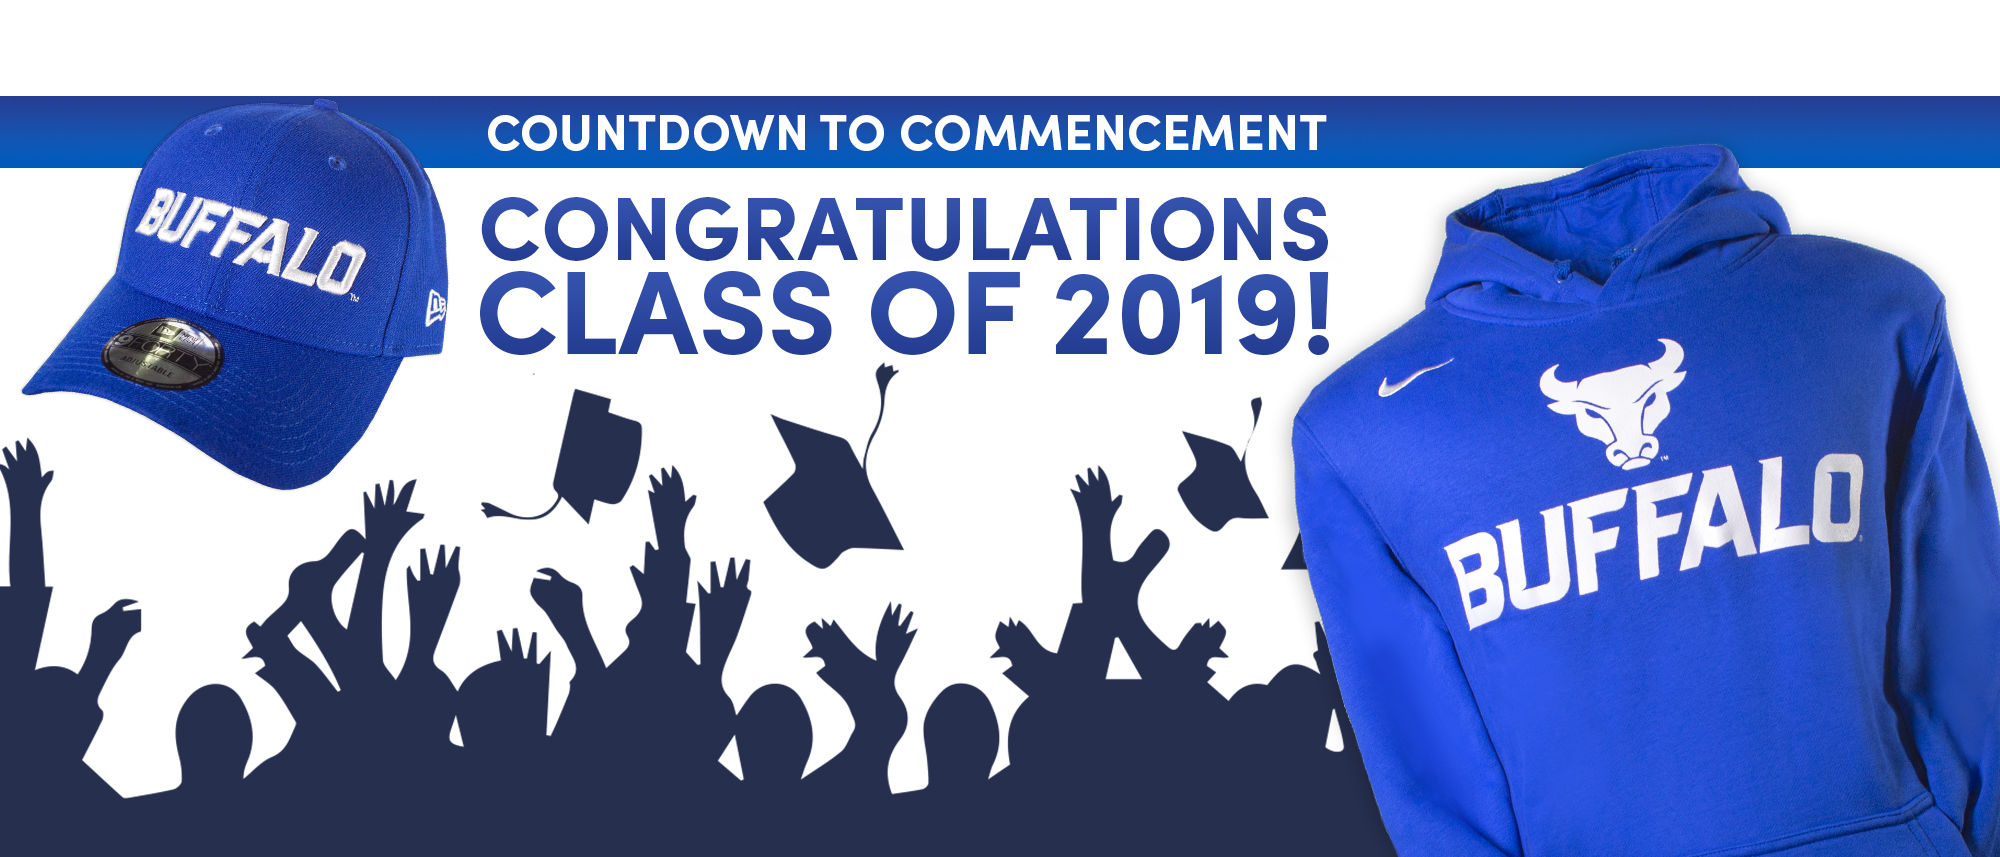 Countdown to Commencement. Congratulations Class of 2019!